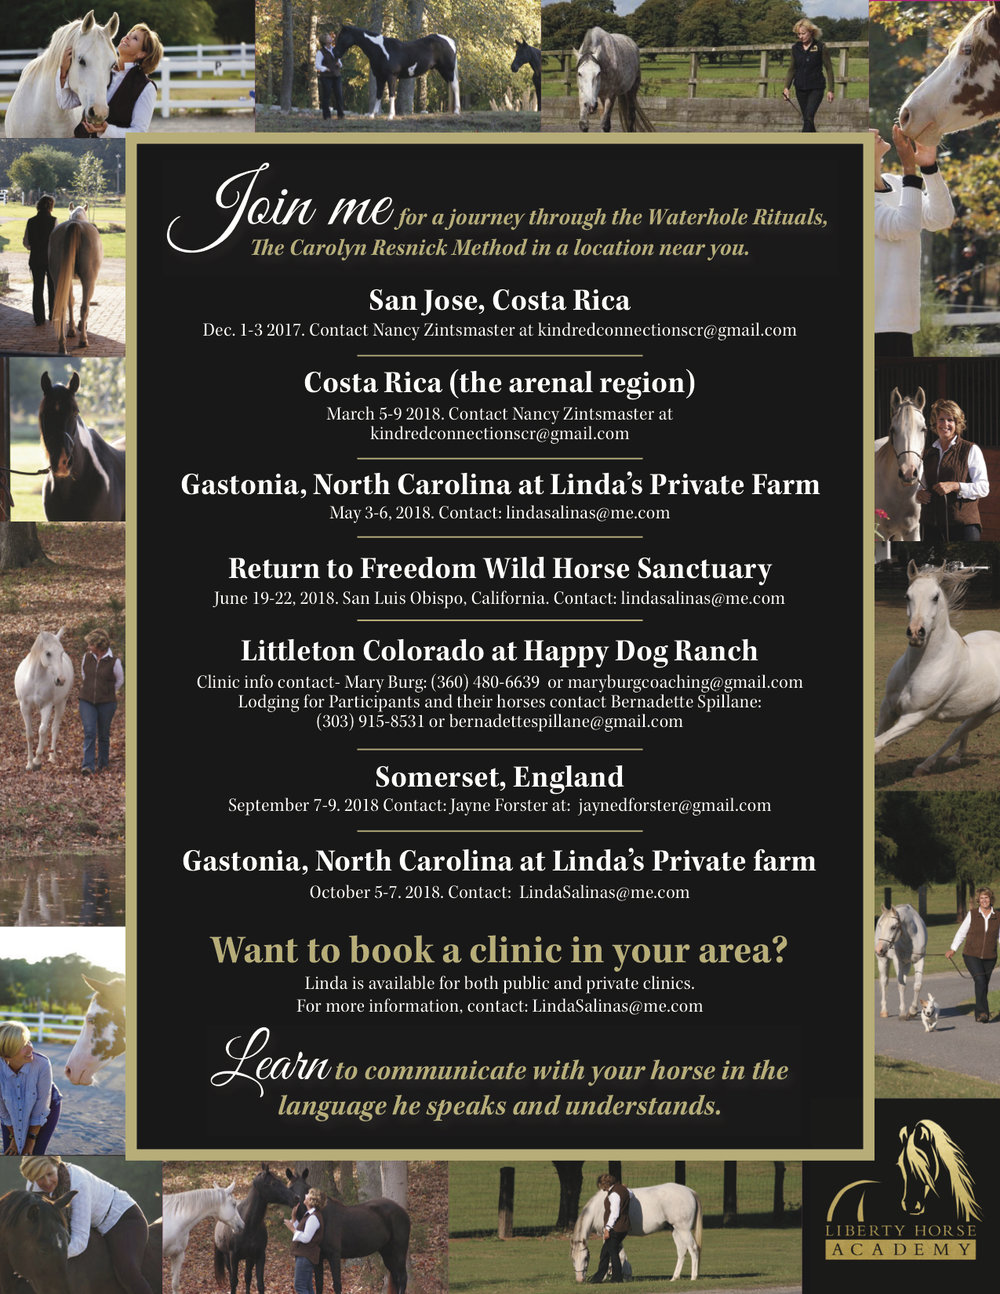 Final Liberty Horse Academy Flyer.jpg